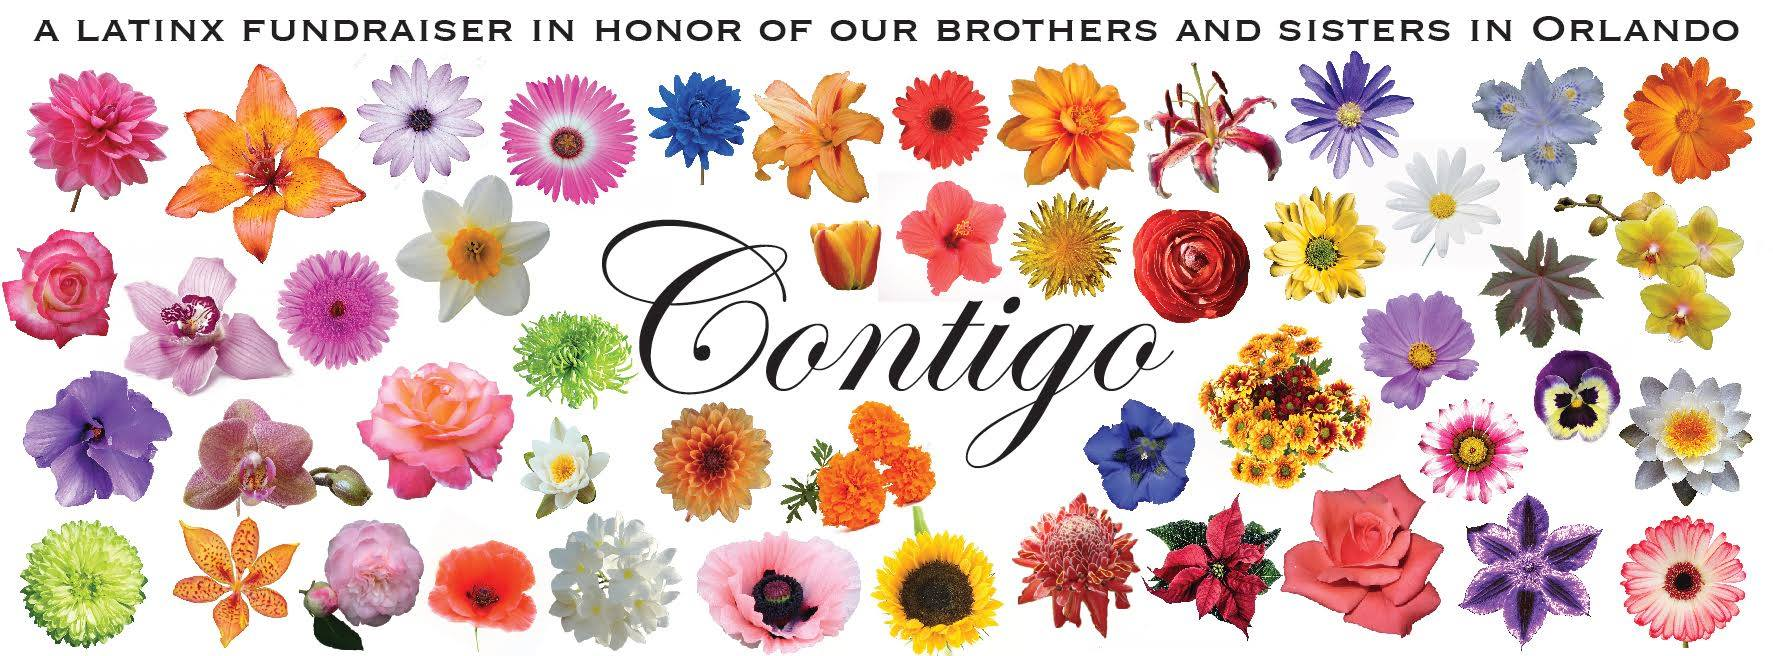 Contigo's flyer, designed by Karoline Hatch, features 49 flyers -- one for each of the clubgoers who died.